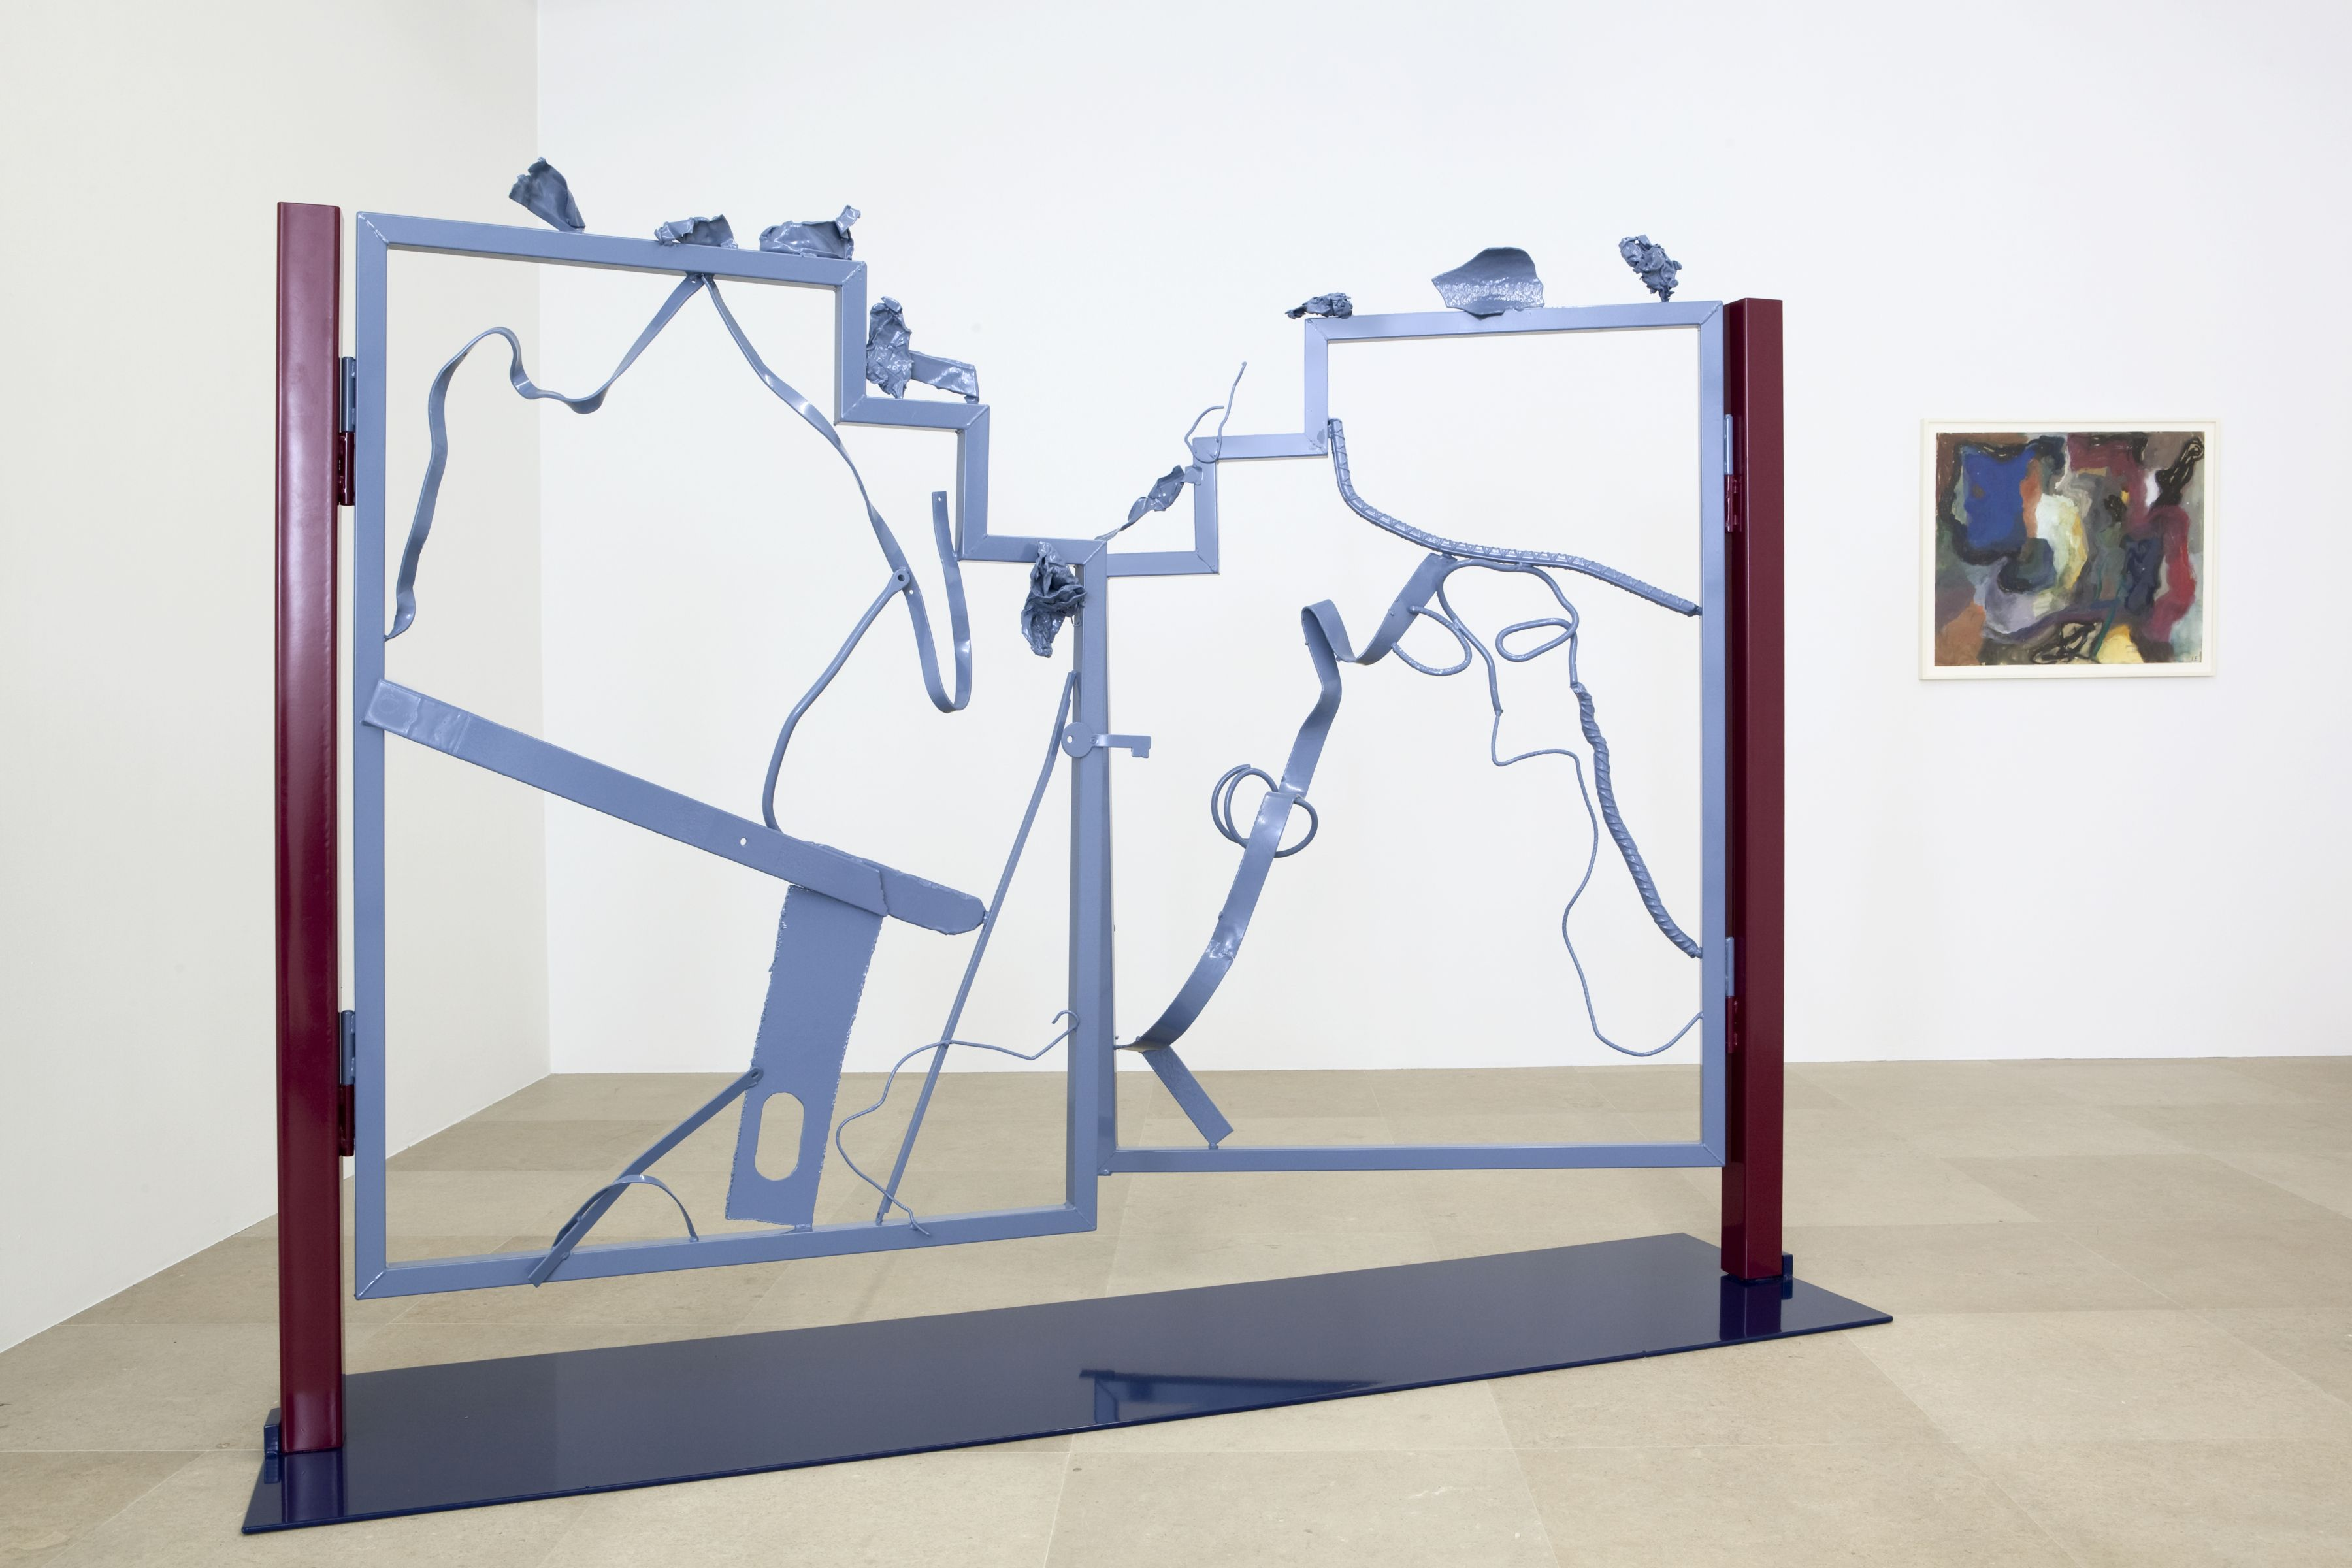 Ida Ekblad, Untitled, 2011, Steel and lacquer, 72 1/2 x 98 1/2 x 24 3/4 inches, Installation view, Greene Naftali, New York, 2011